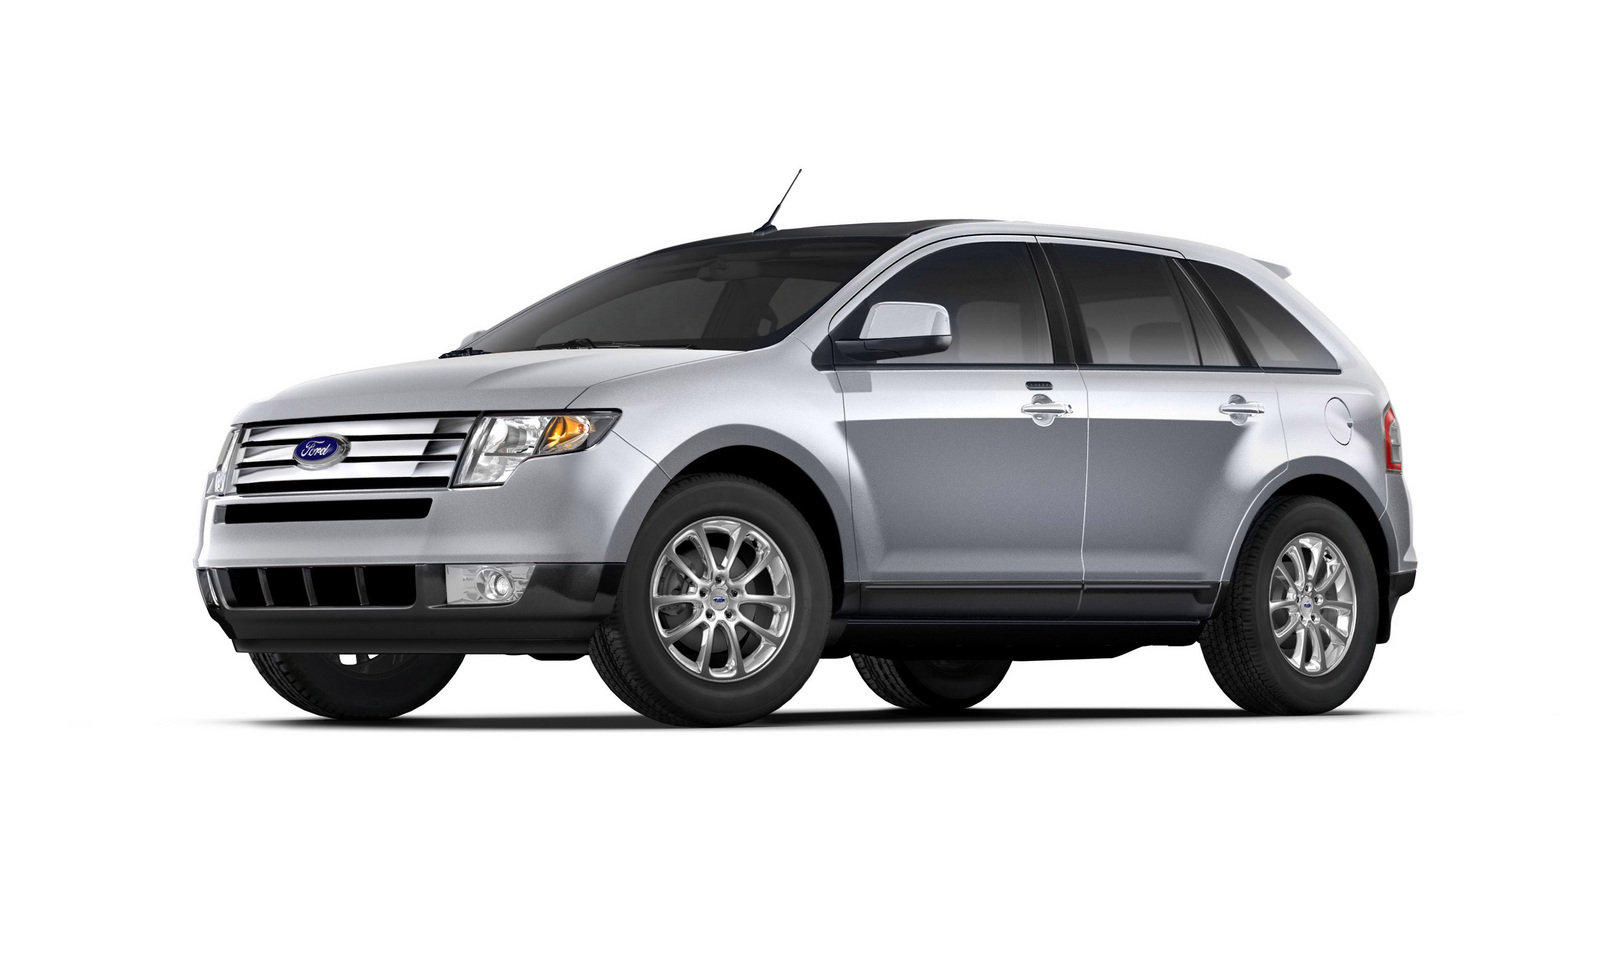 2006 ford edge picture 37873 car review top speed. Black Bedroom Furniture Sets. Home Design Ideas